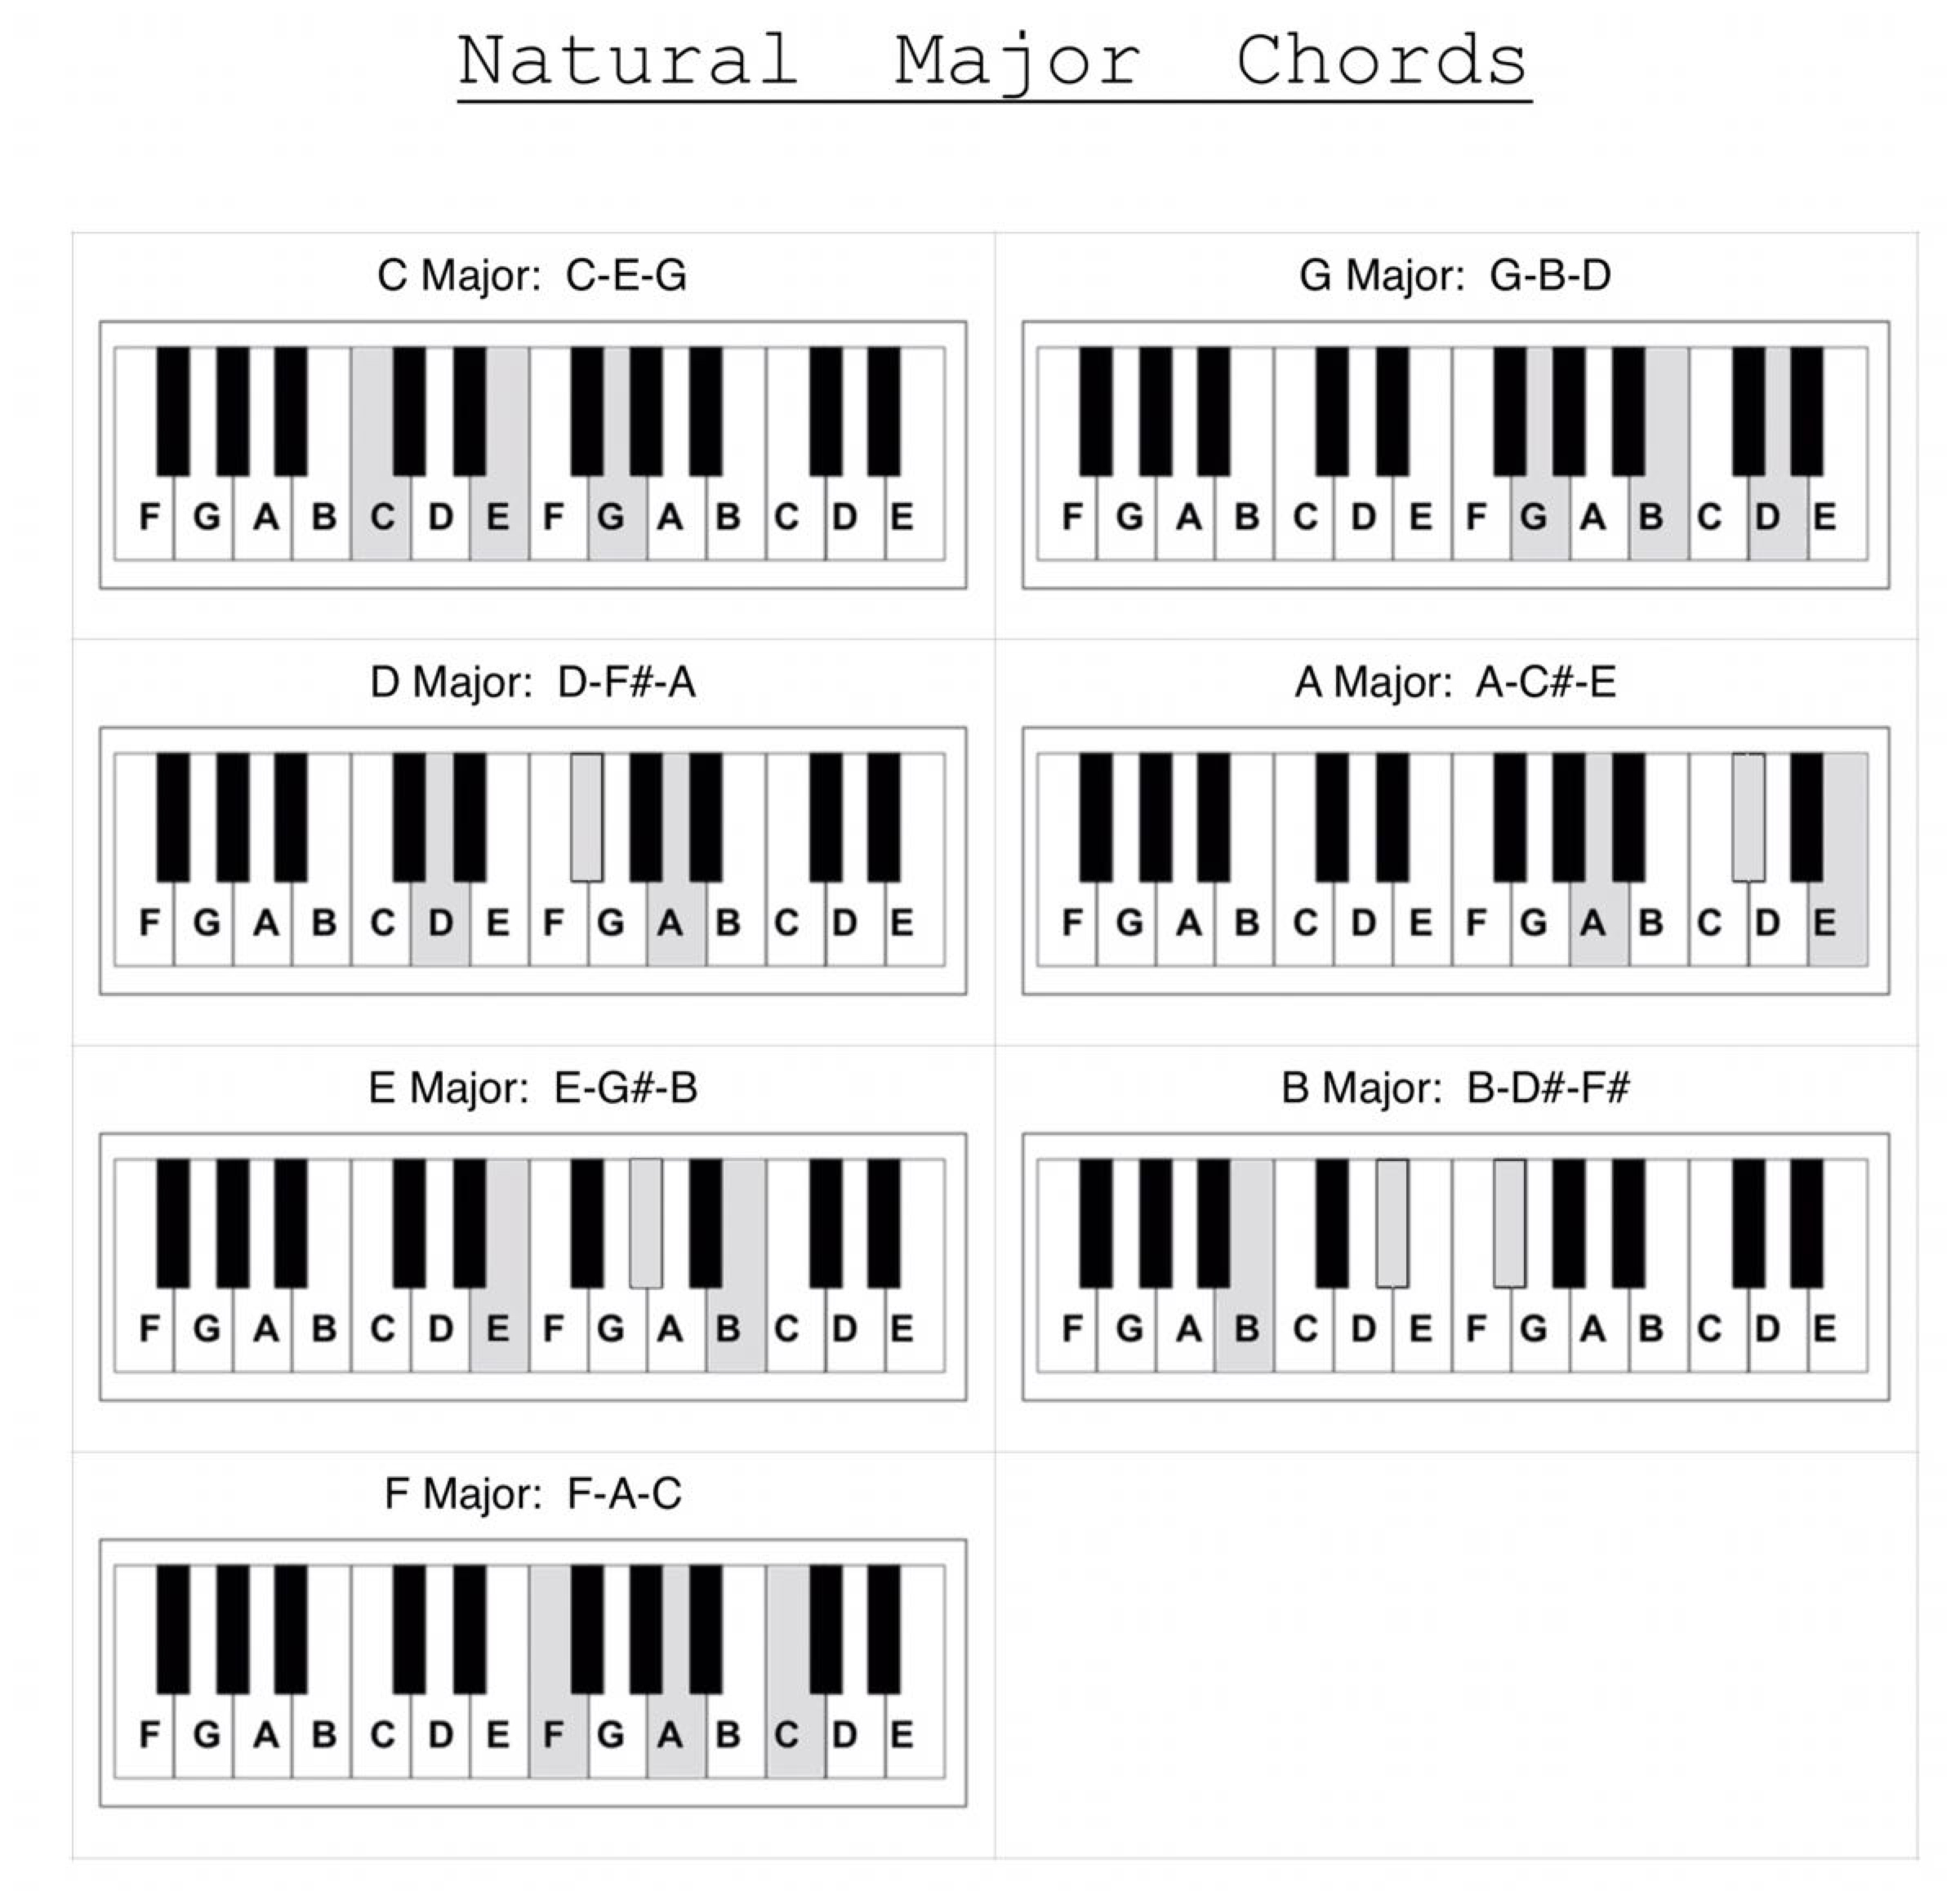 find any major or minor chord part ii play jewish music chart shows the natural major chords c d e f g